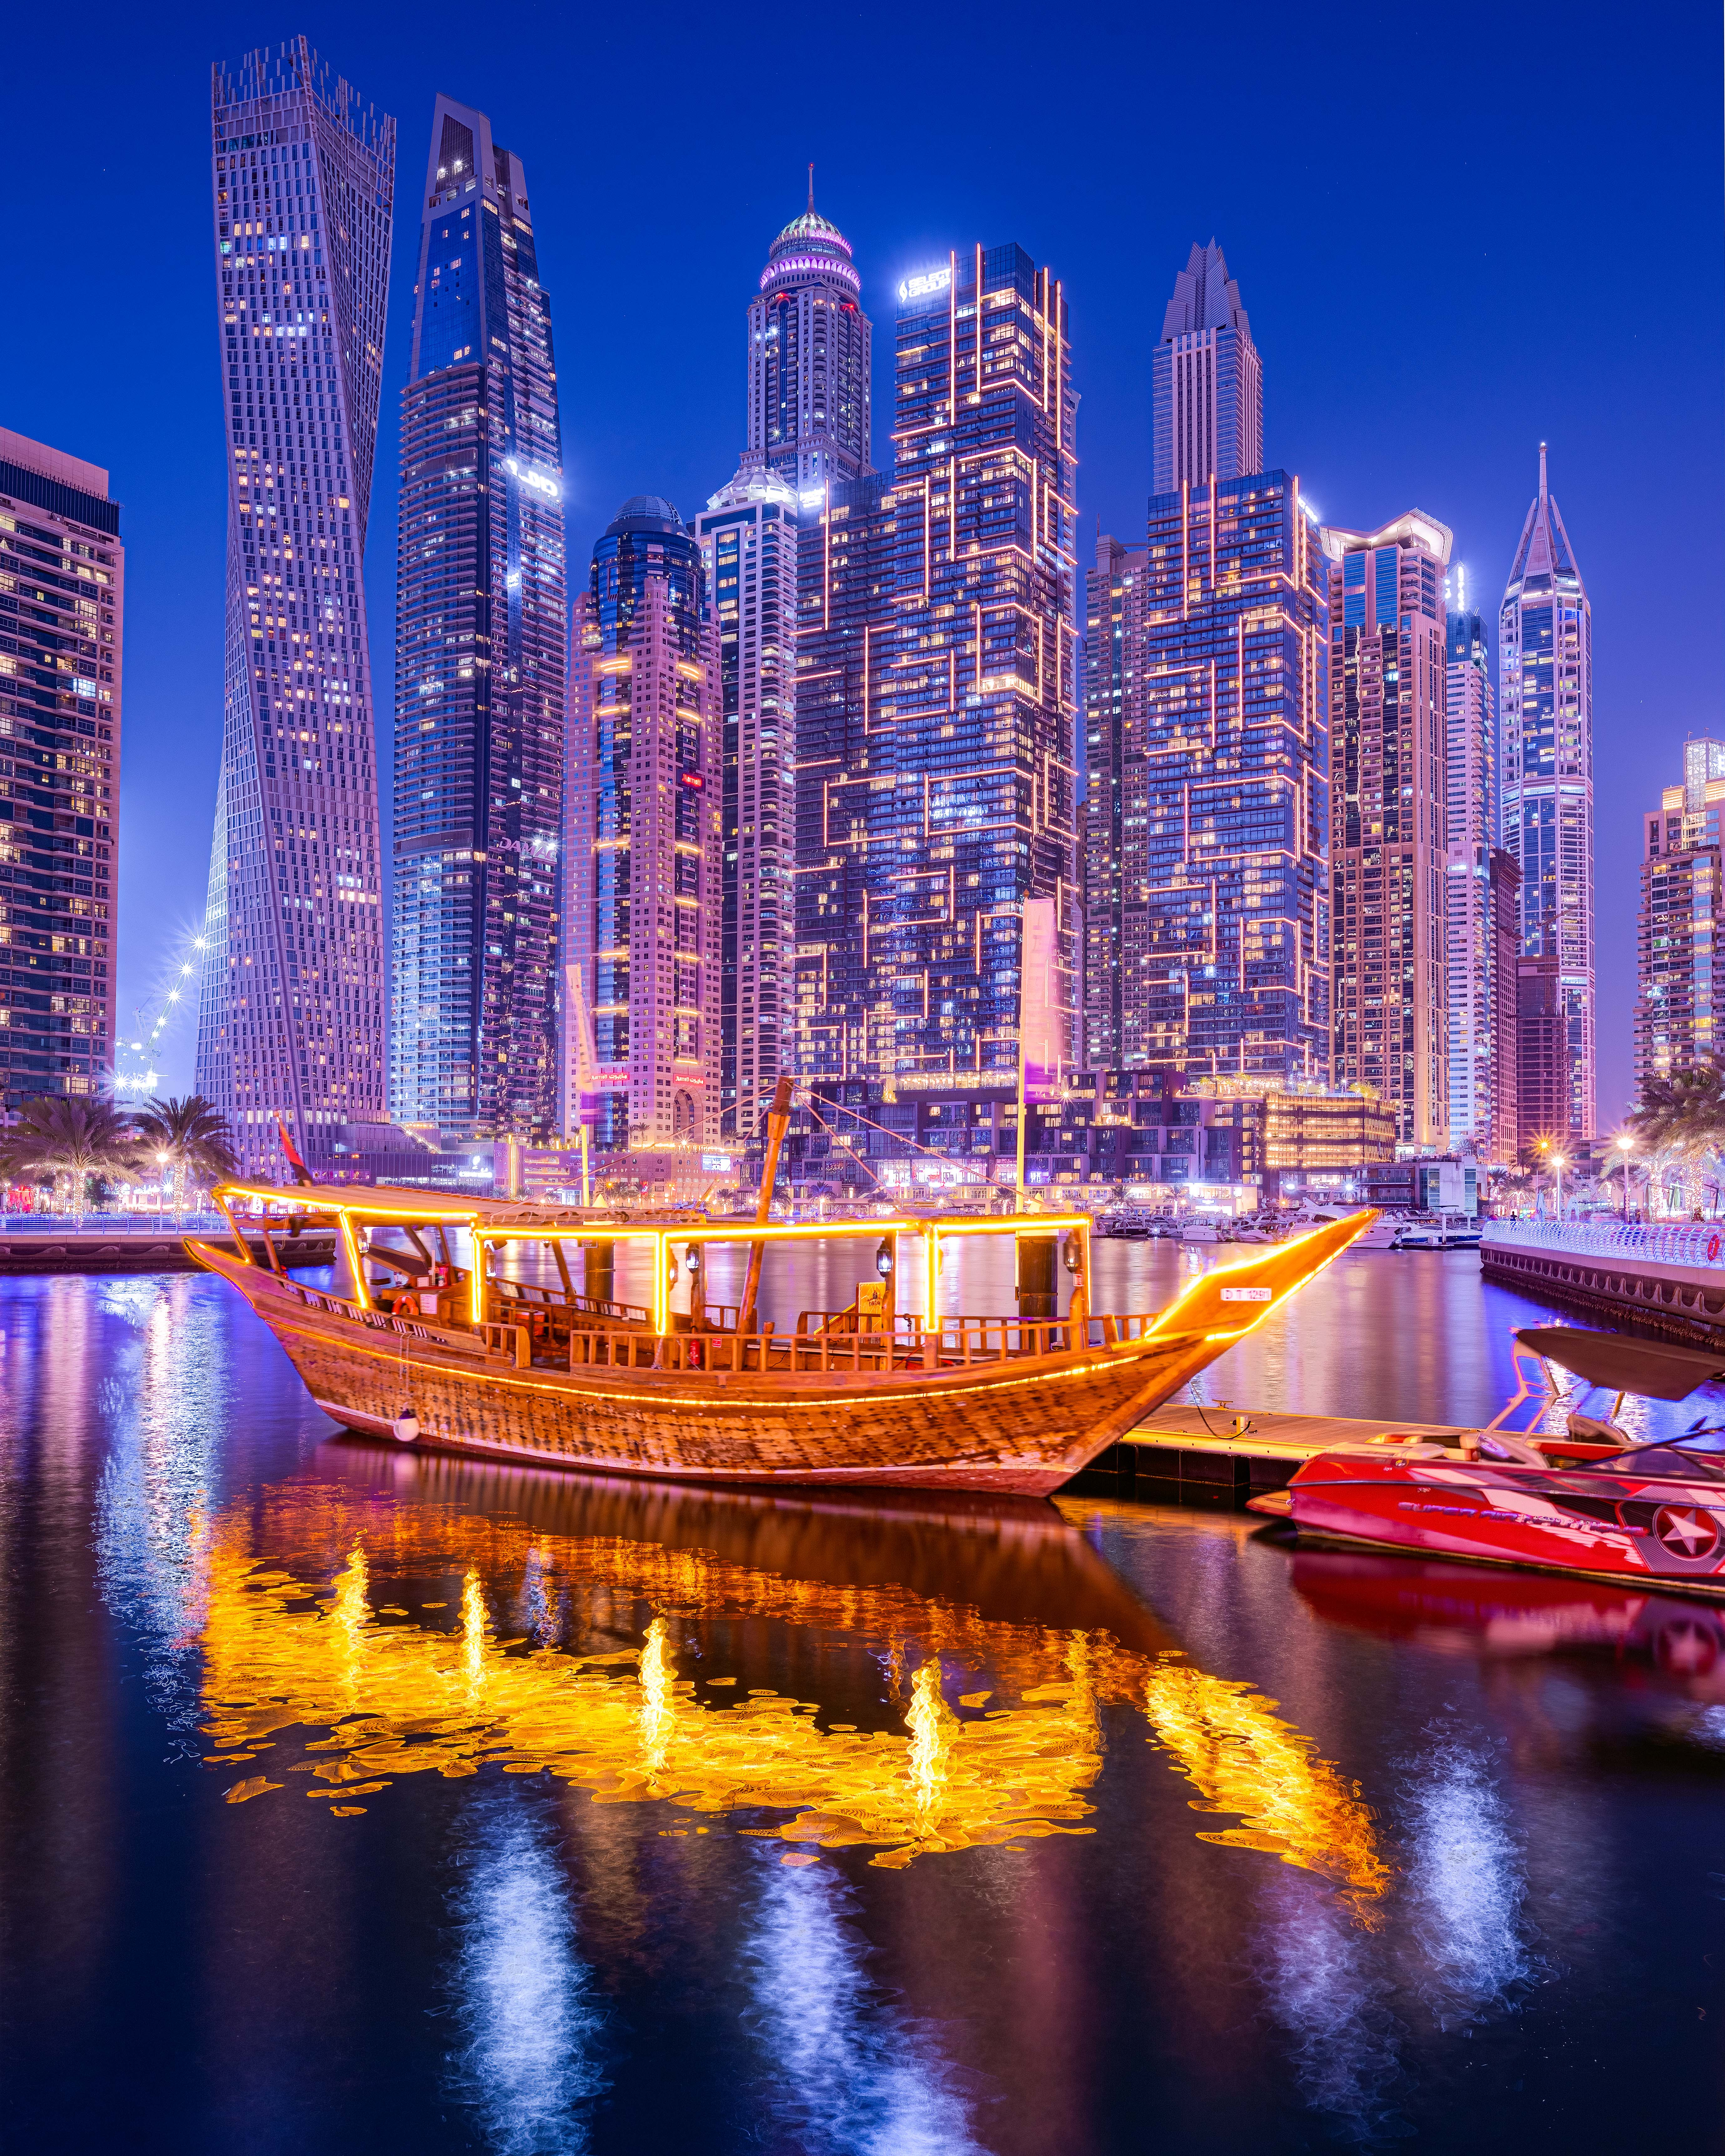 3. Old and new, the abra with the skyline in the background.